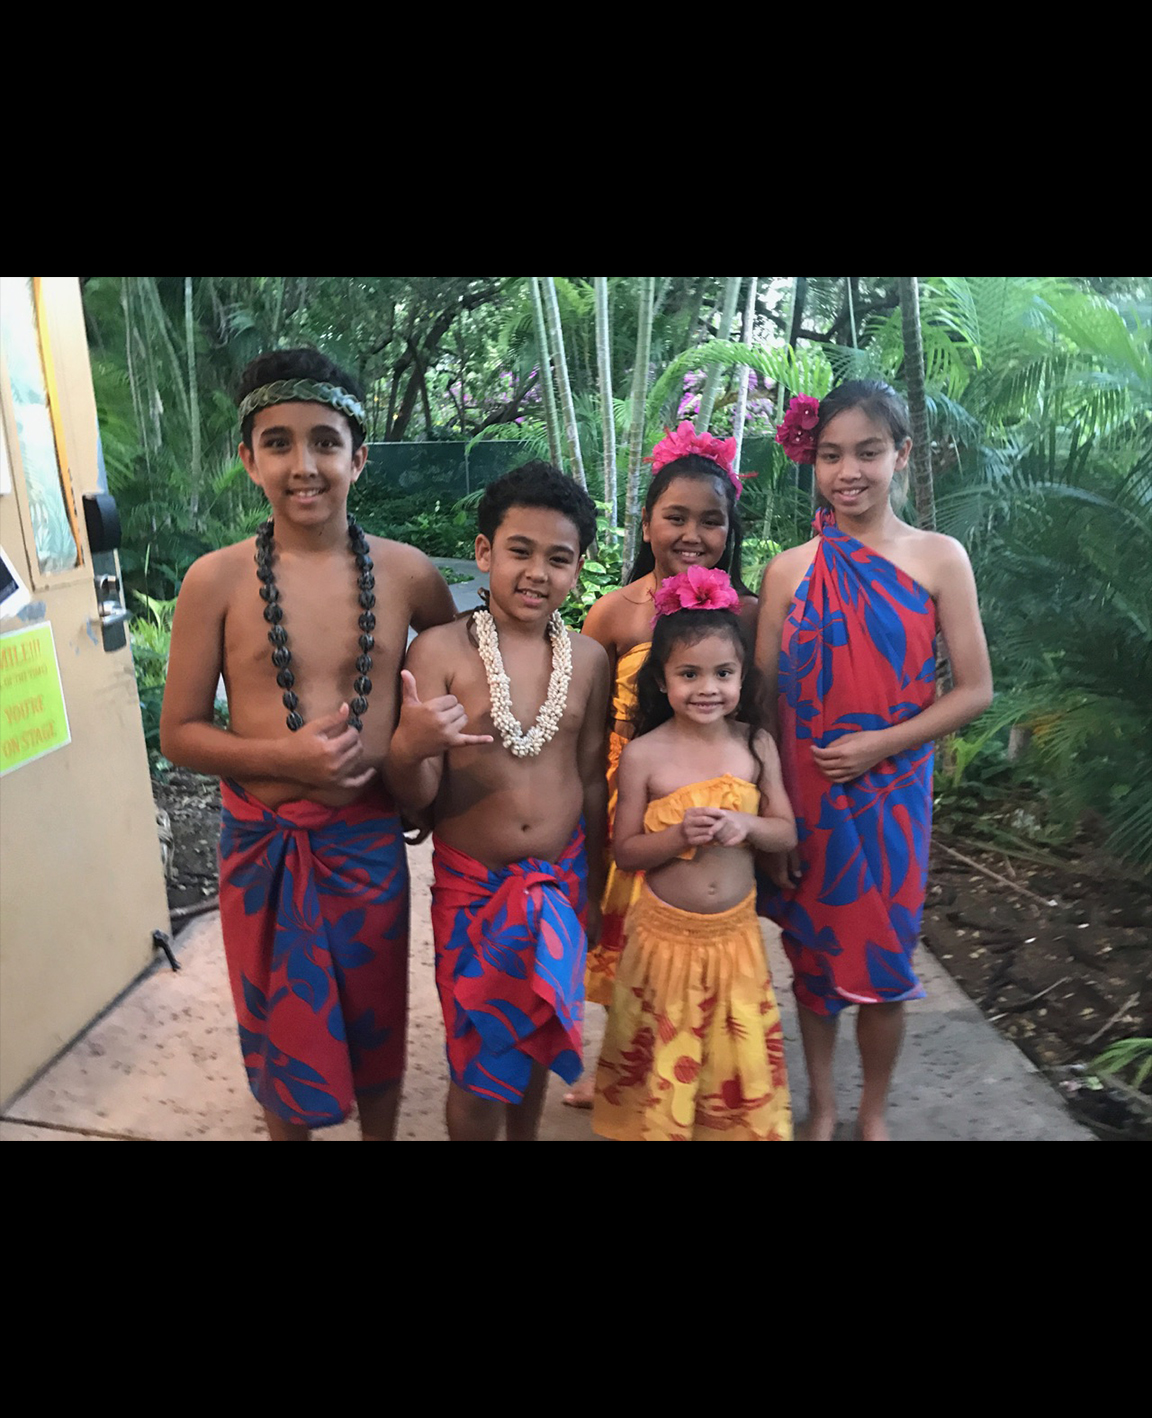 April 24, 2017 Aren't they adorable?! Some of our Keiki cast smiling at Hale Koa's special Military Keiki Luau event.